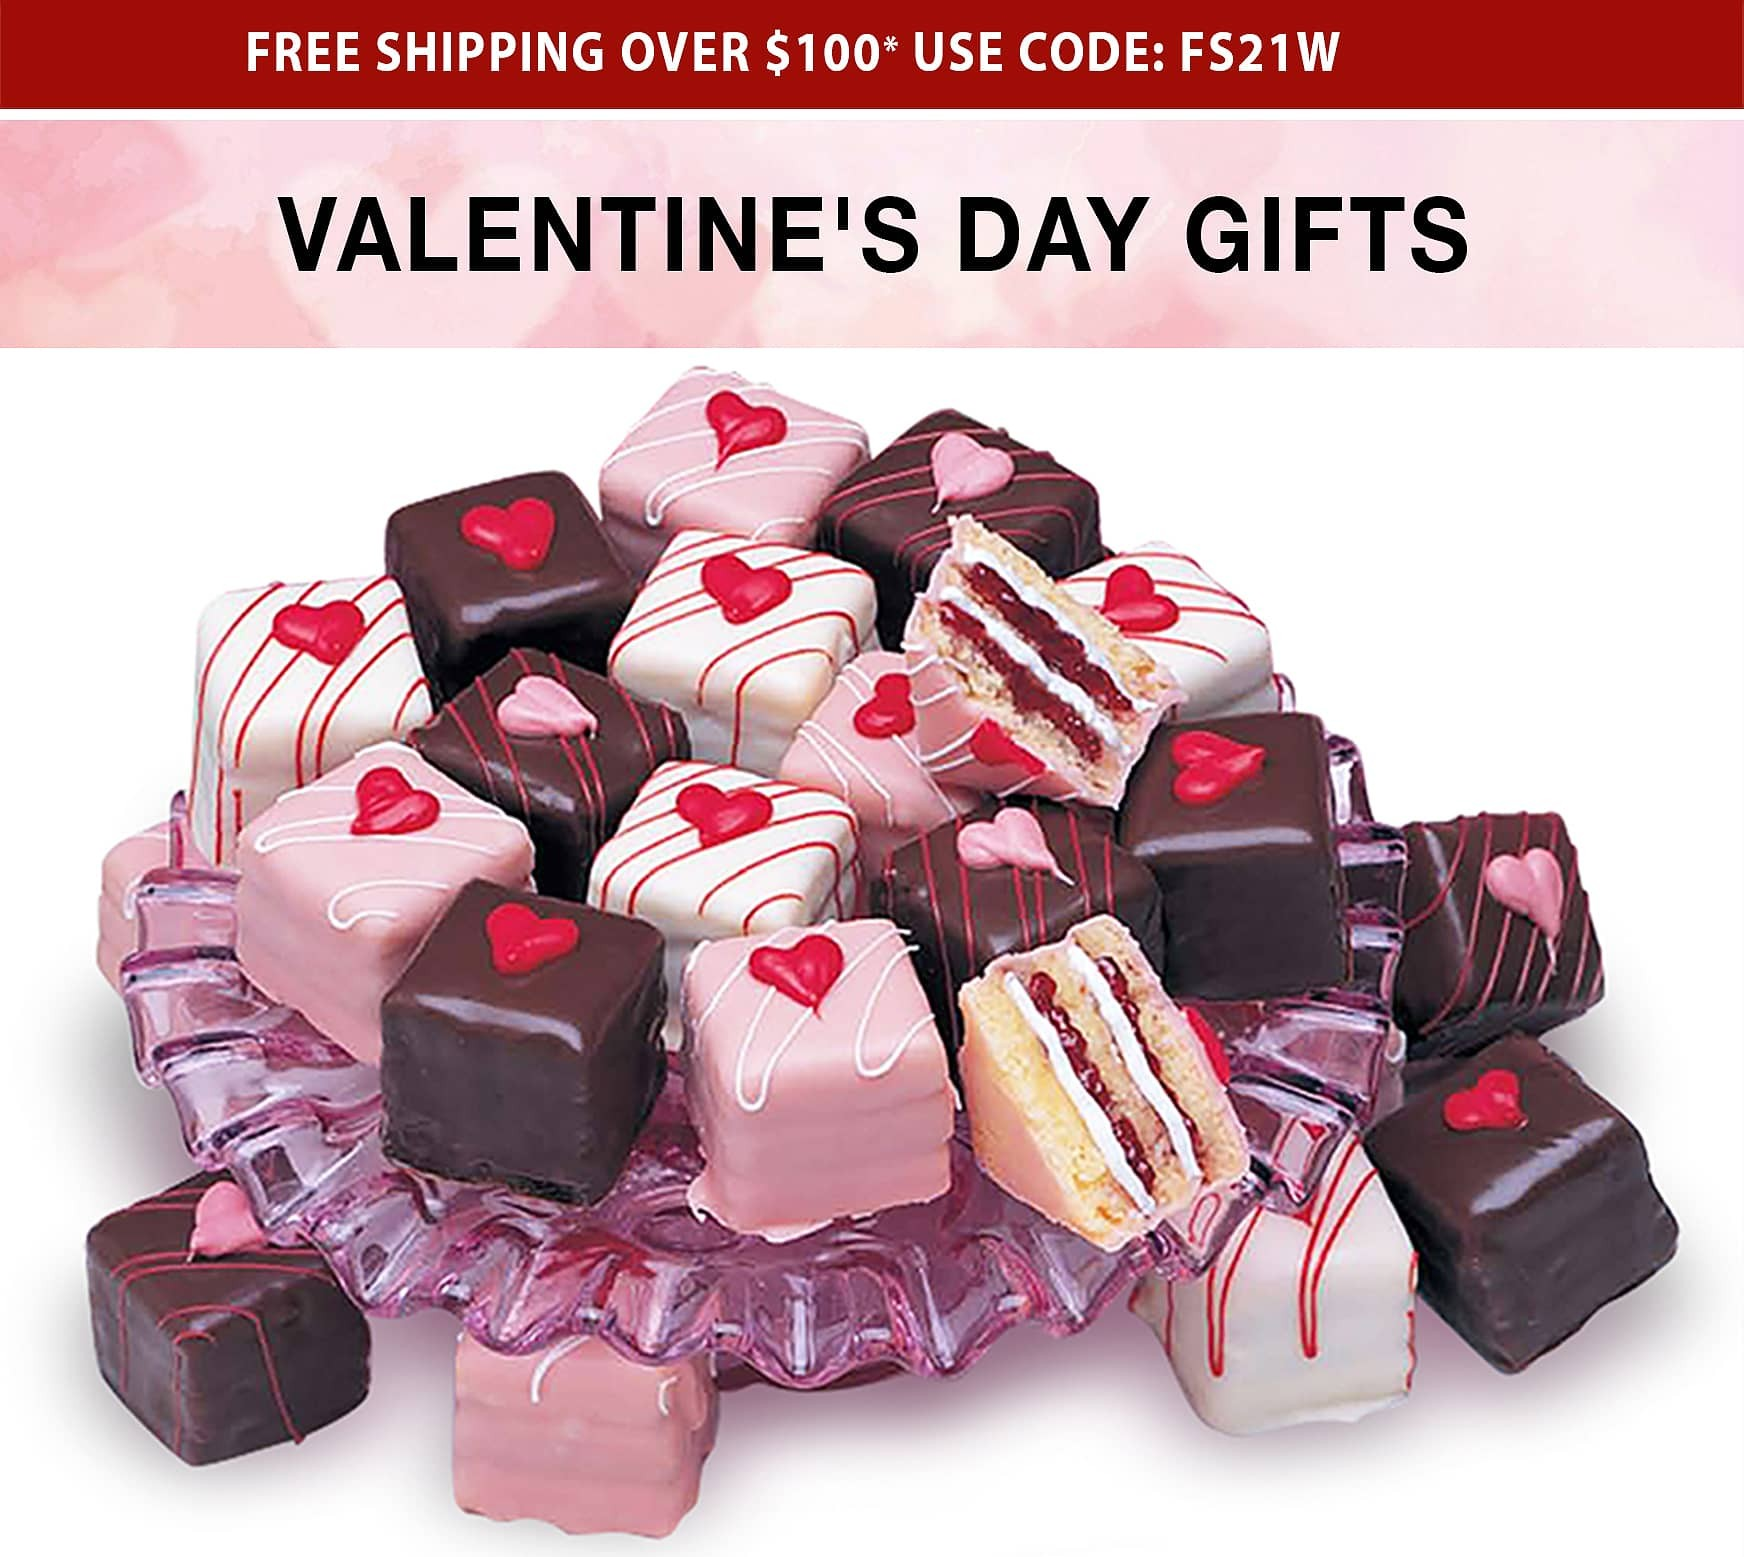 Valentine's Day Gifts - Free Shipping Over $100* Use Code FS21W